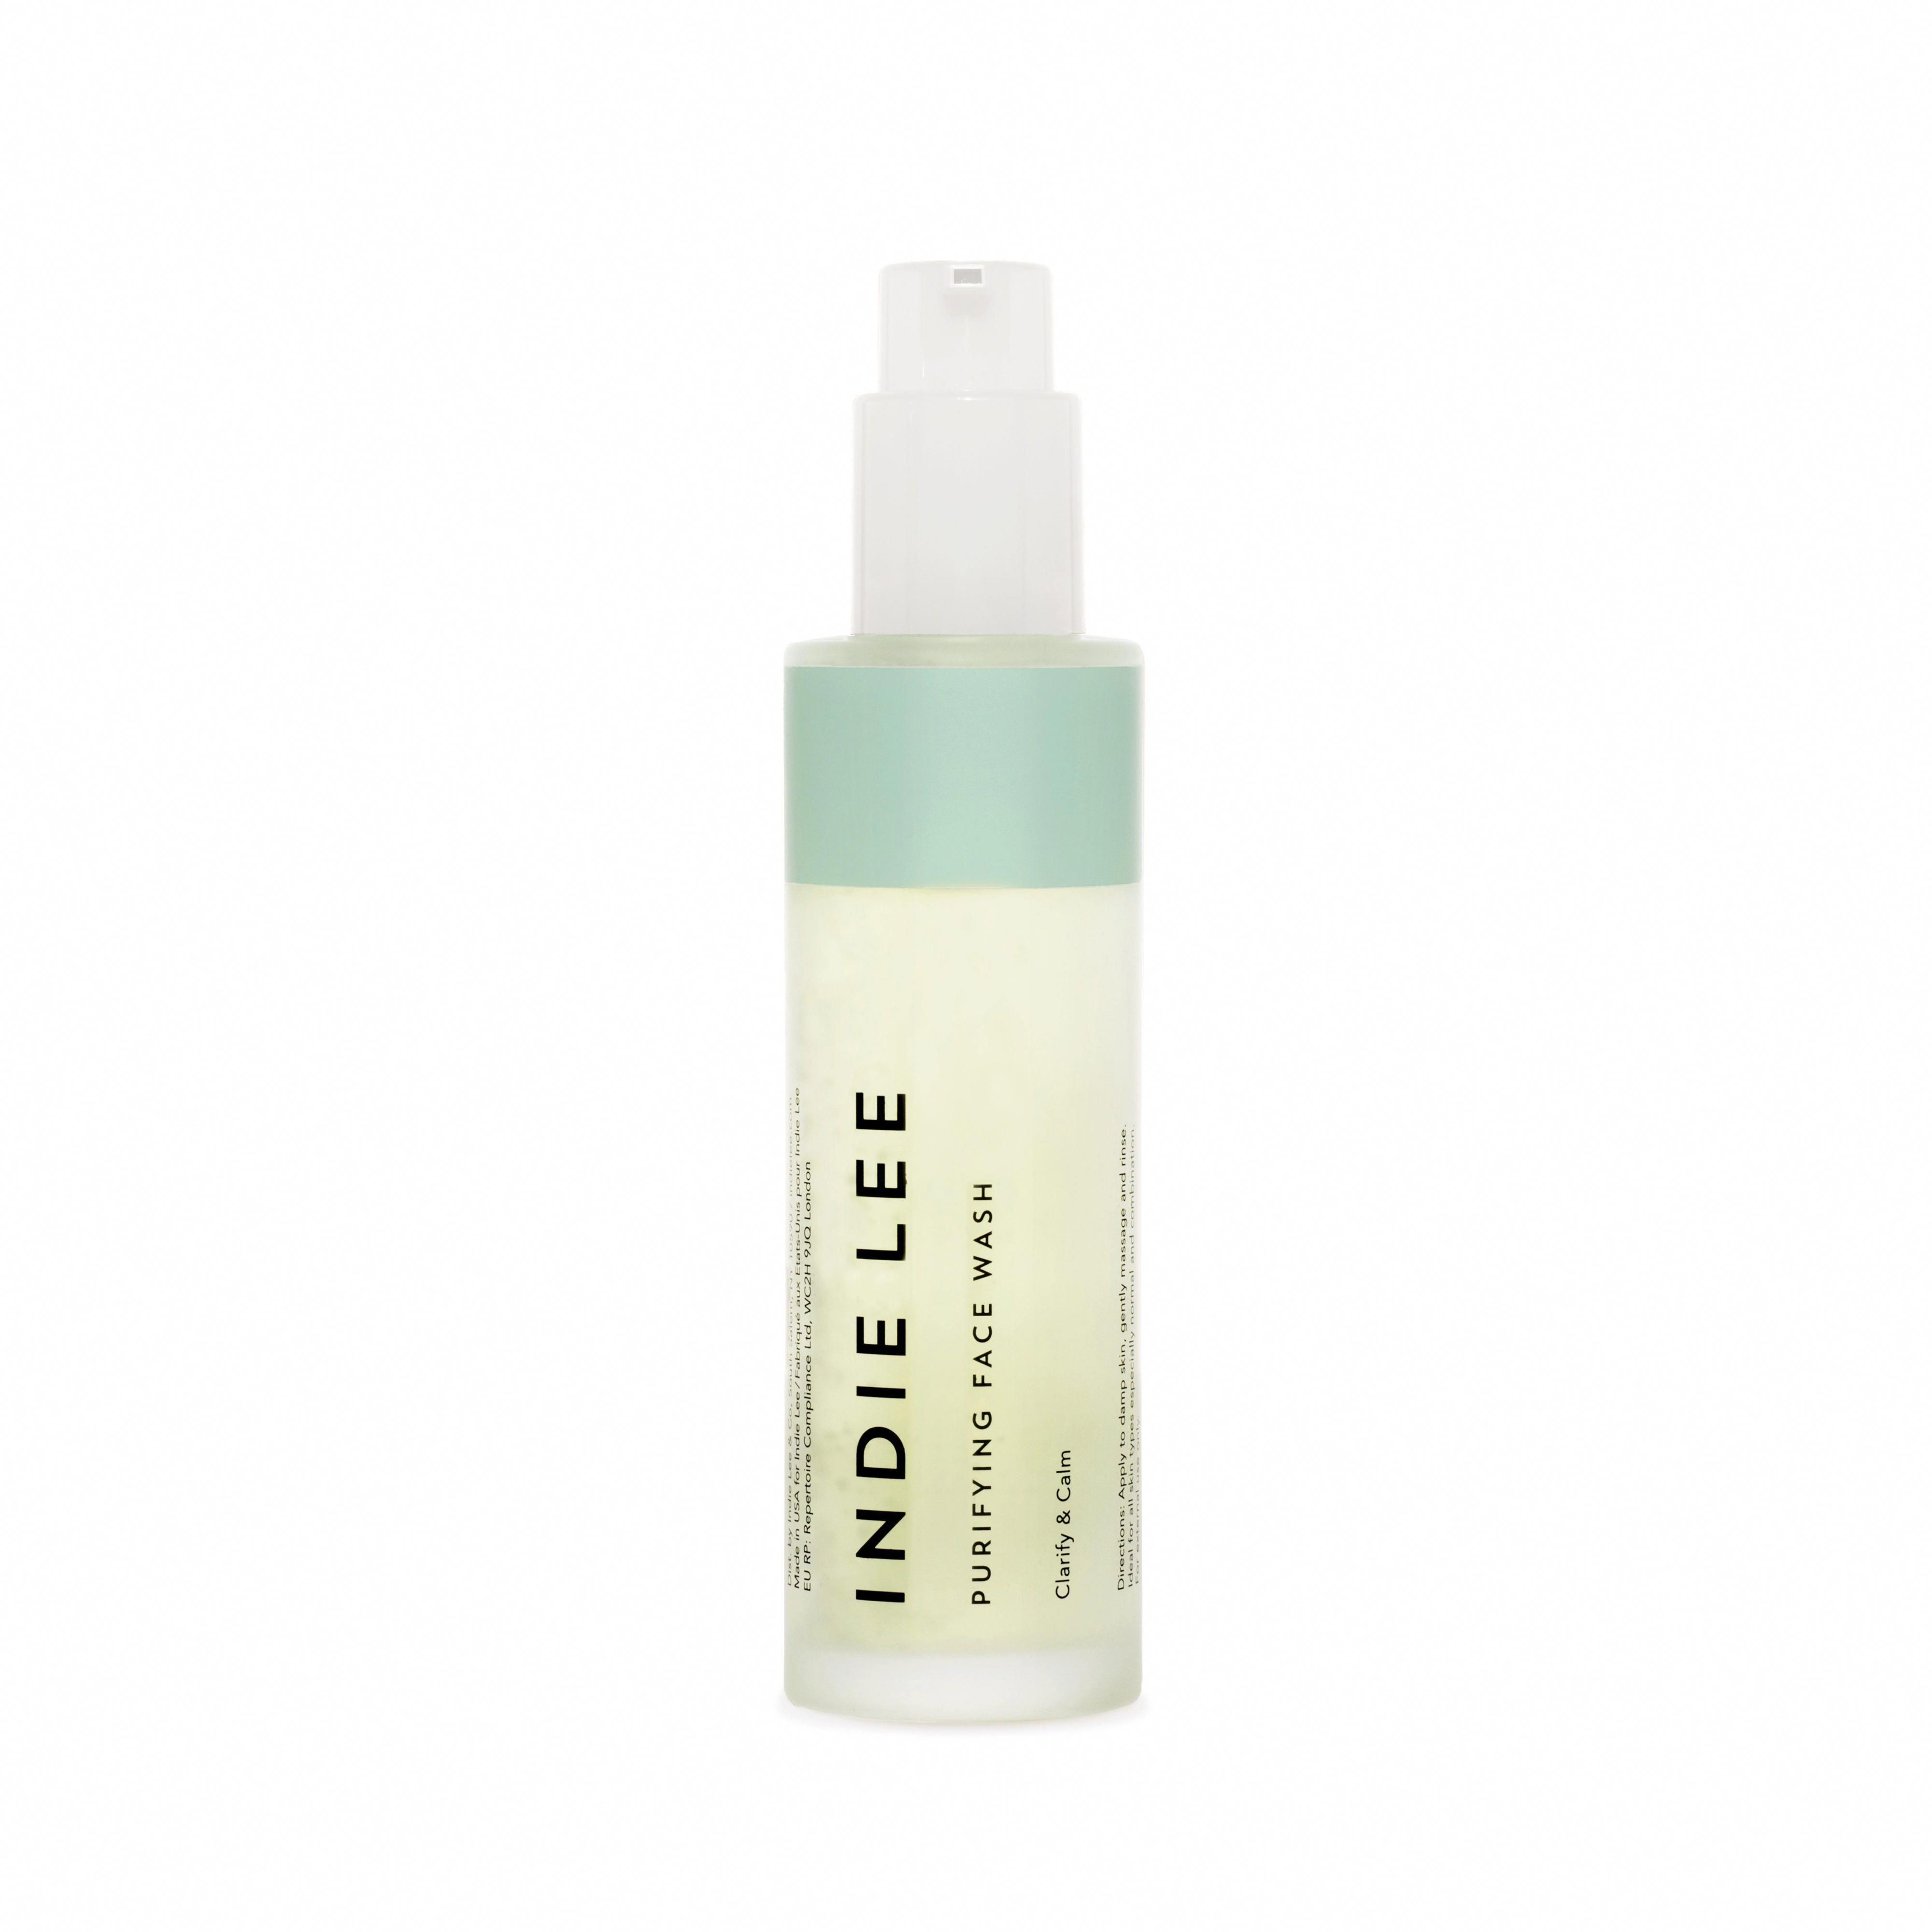 Indie Lee Purifying Face Wash 4.2 fl oz in